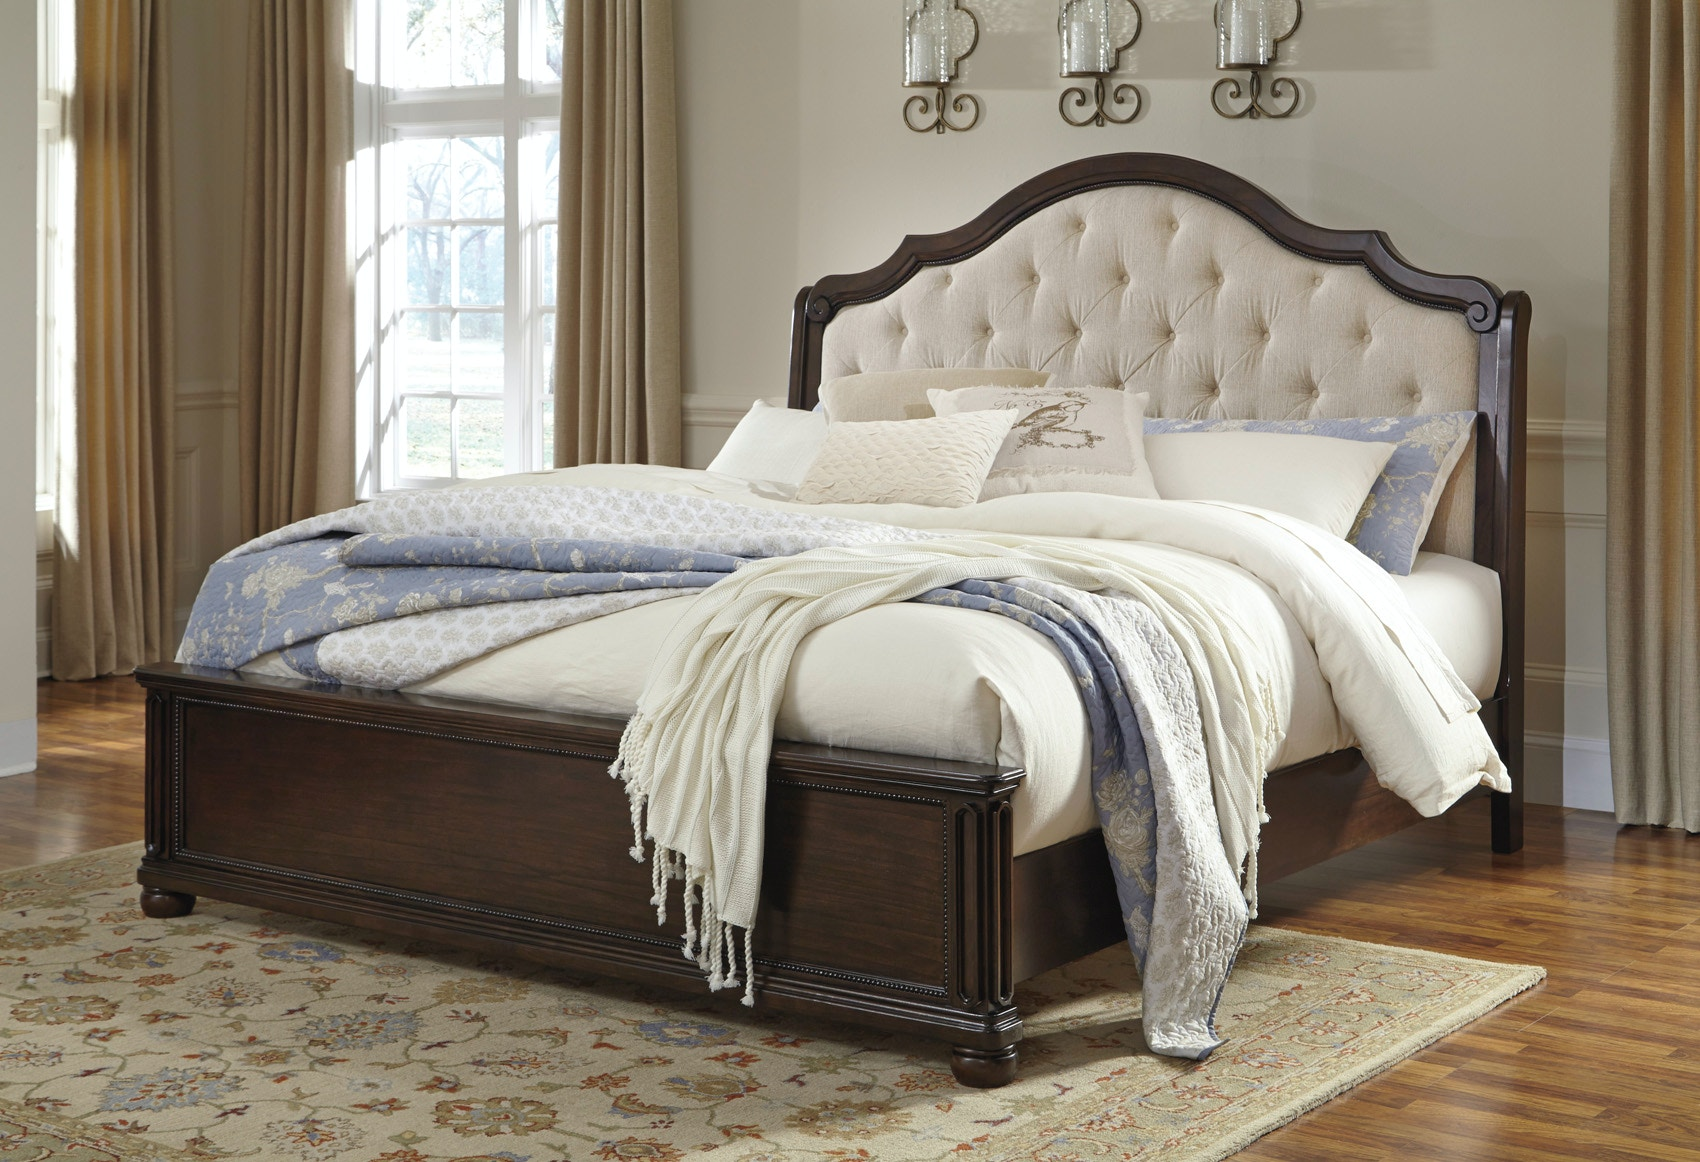 Signature Design by Ashley Moluxy Bedroom Group Queen